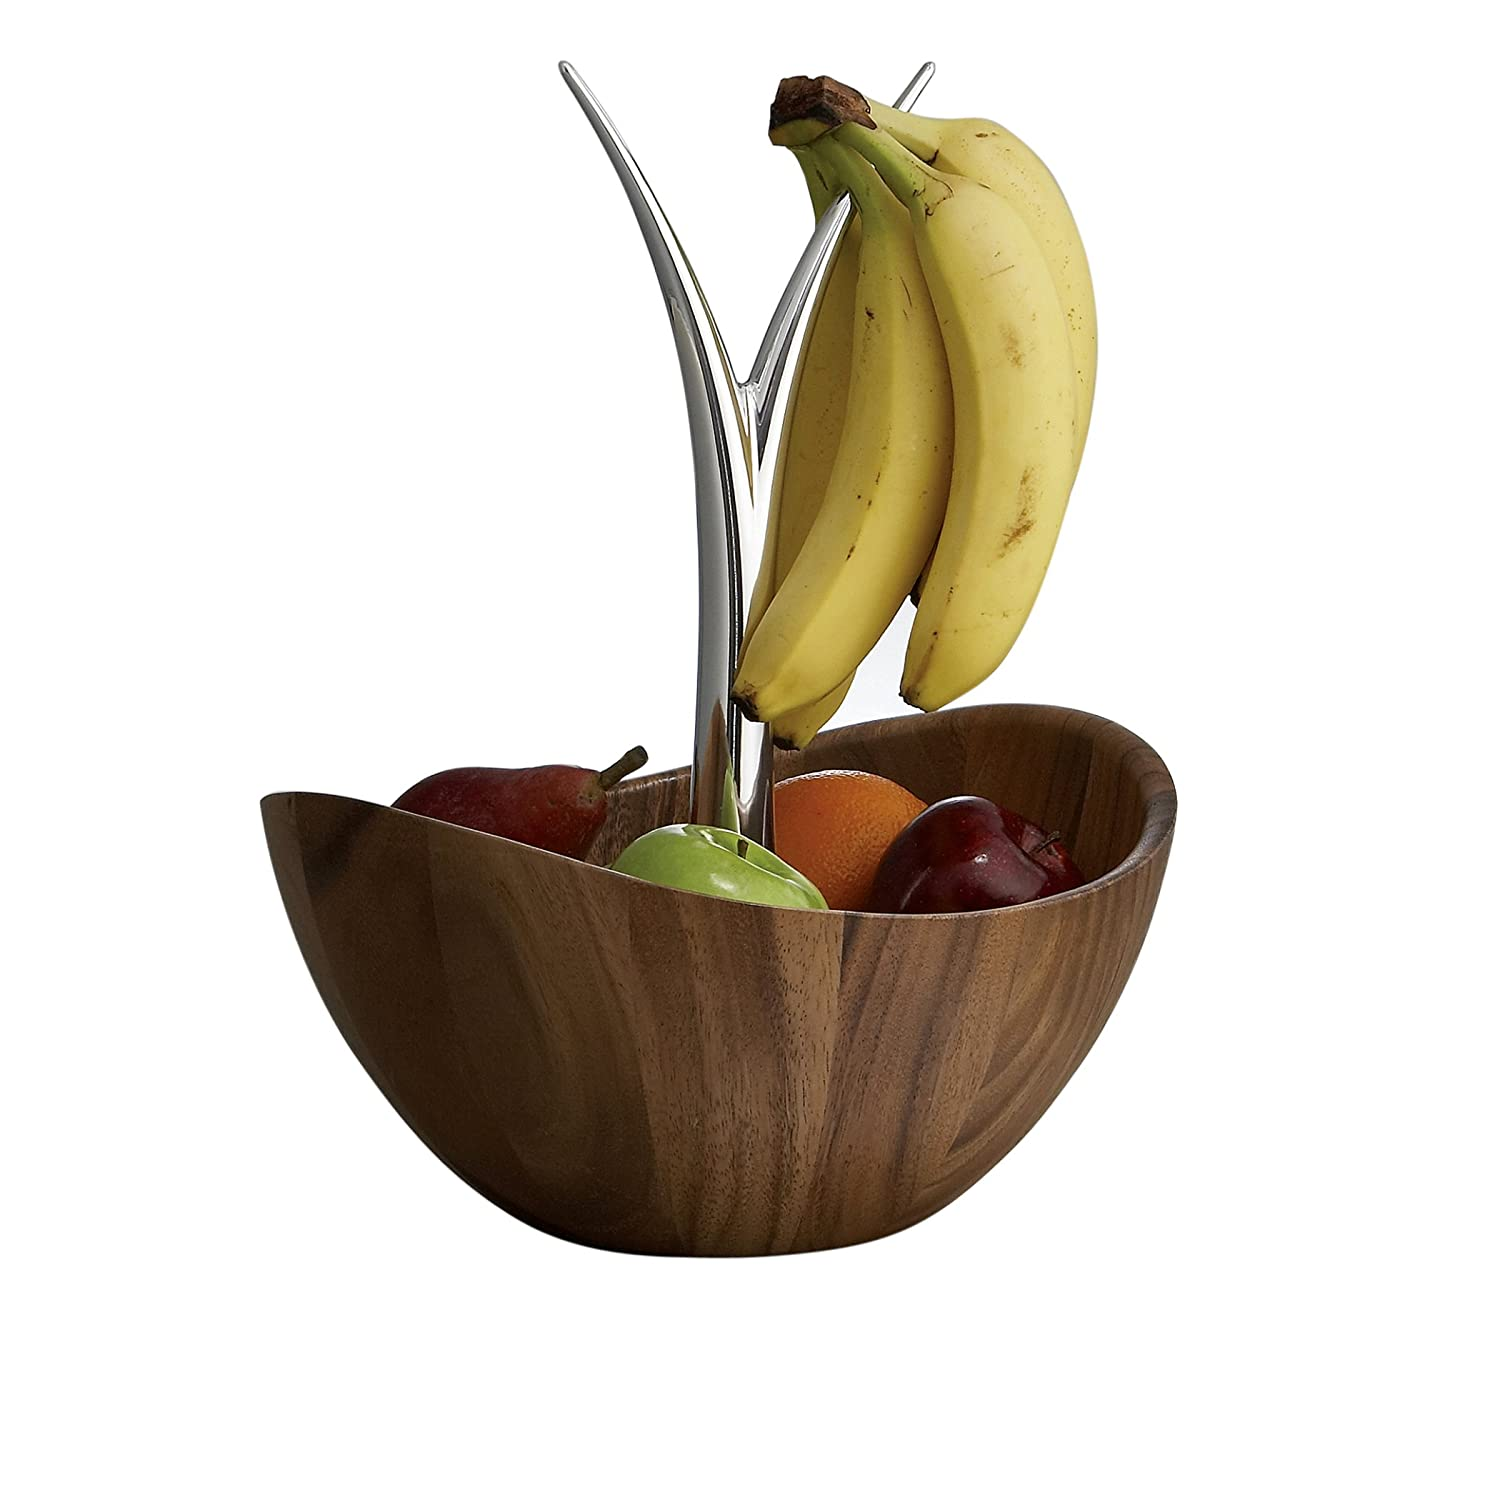 amazoncom nambe fruit tree bowl wood with metal alloy serving  - amazoncom nambe fruit tree bowl wood with metal alloy serving bowlskitchen  dining